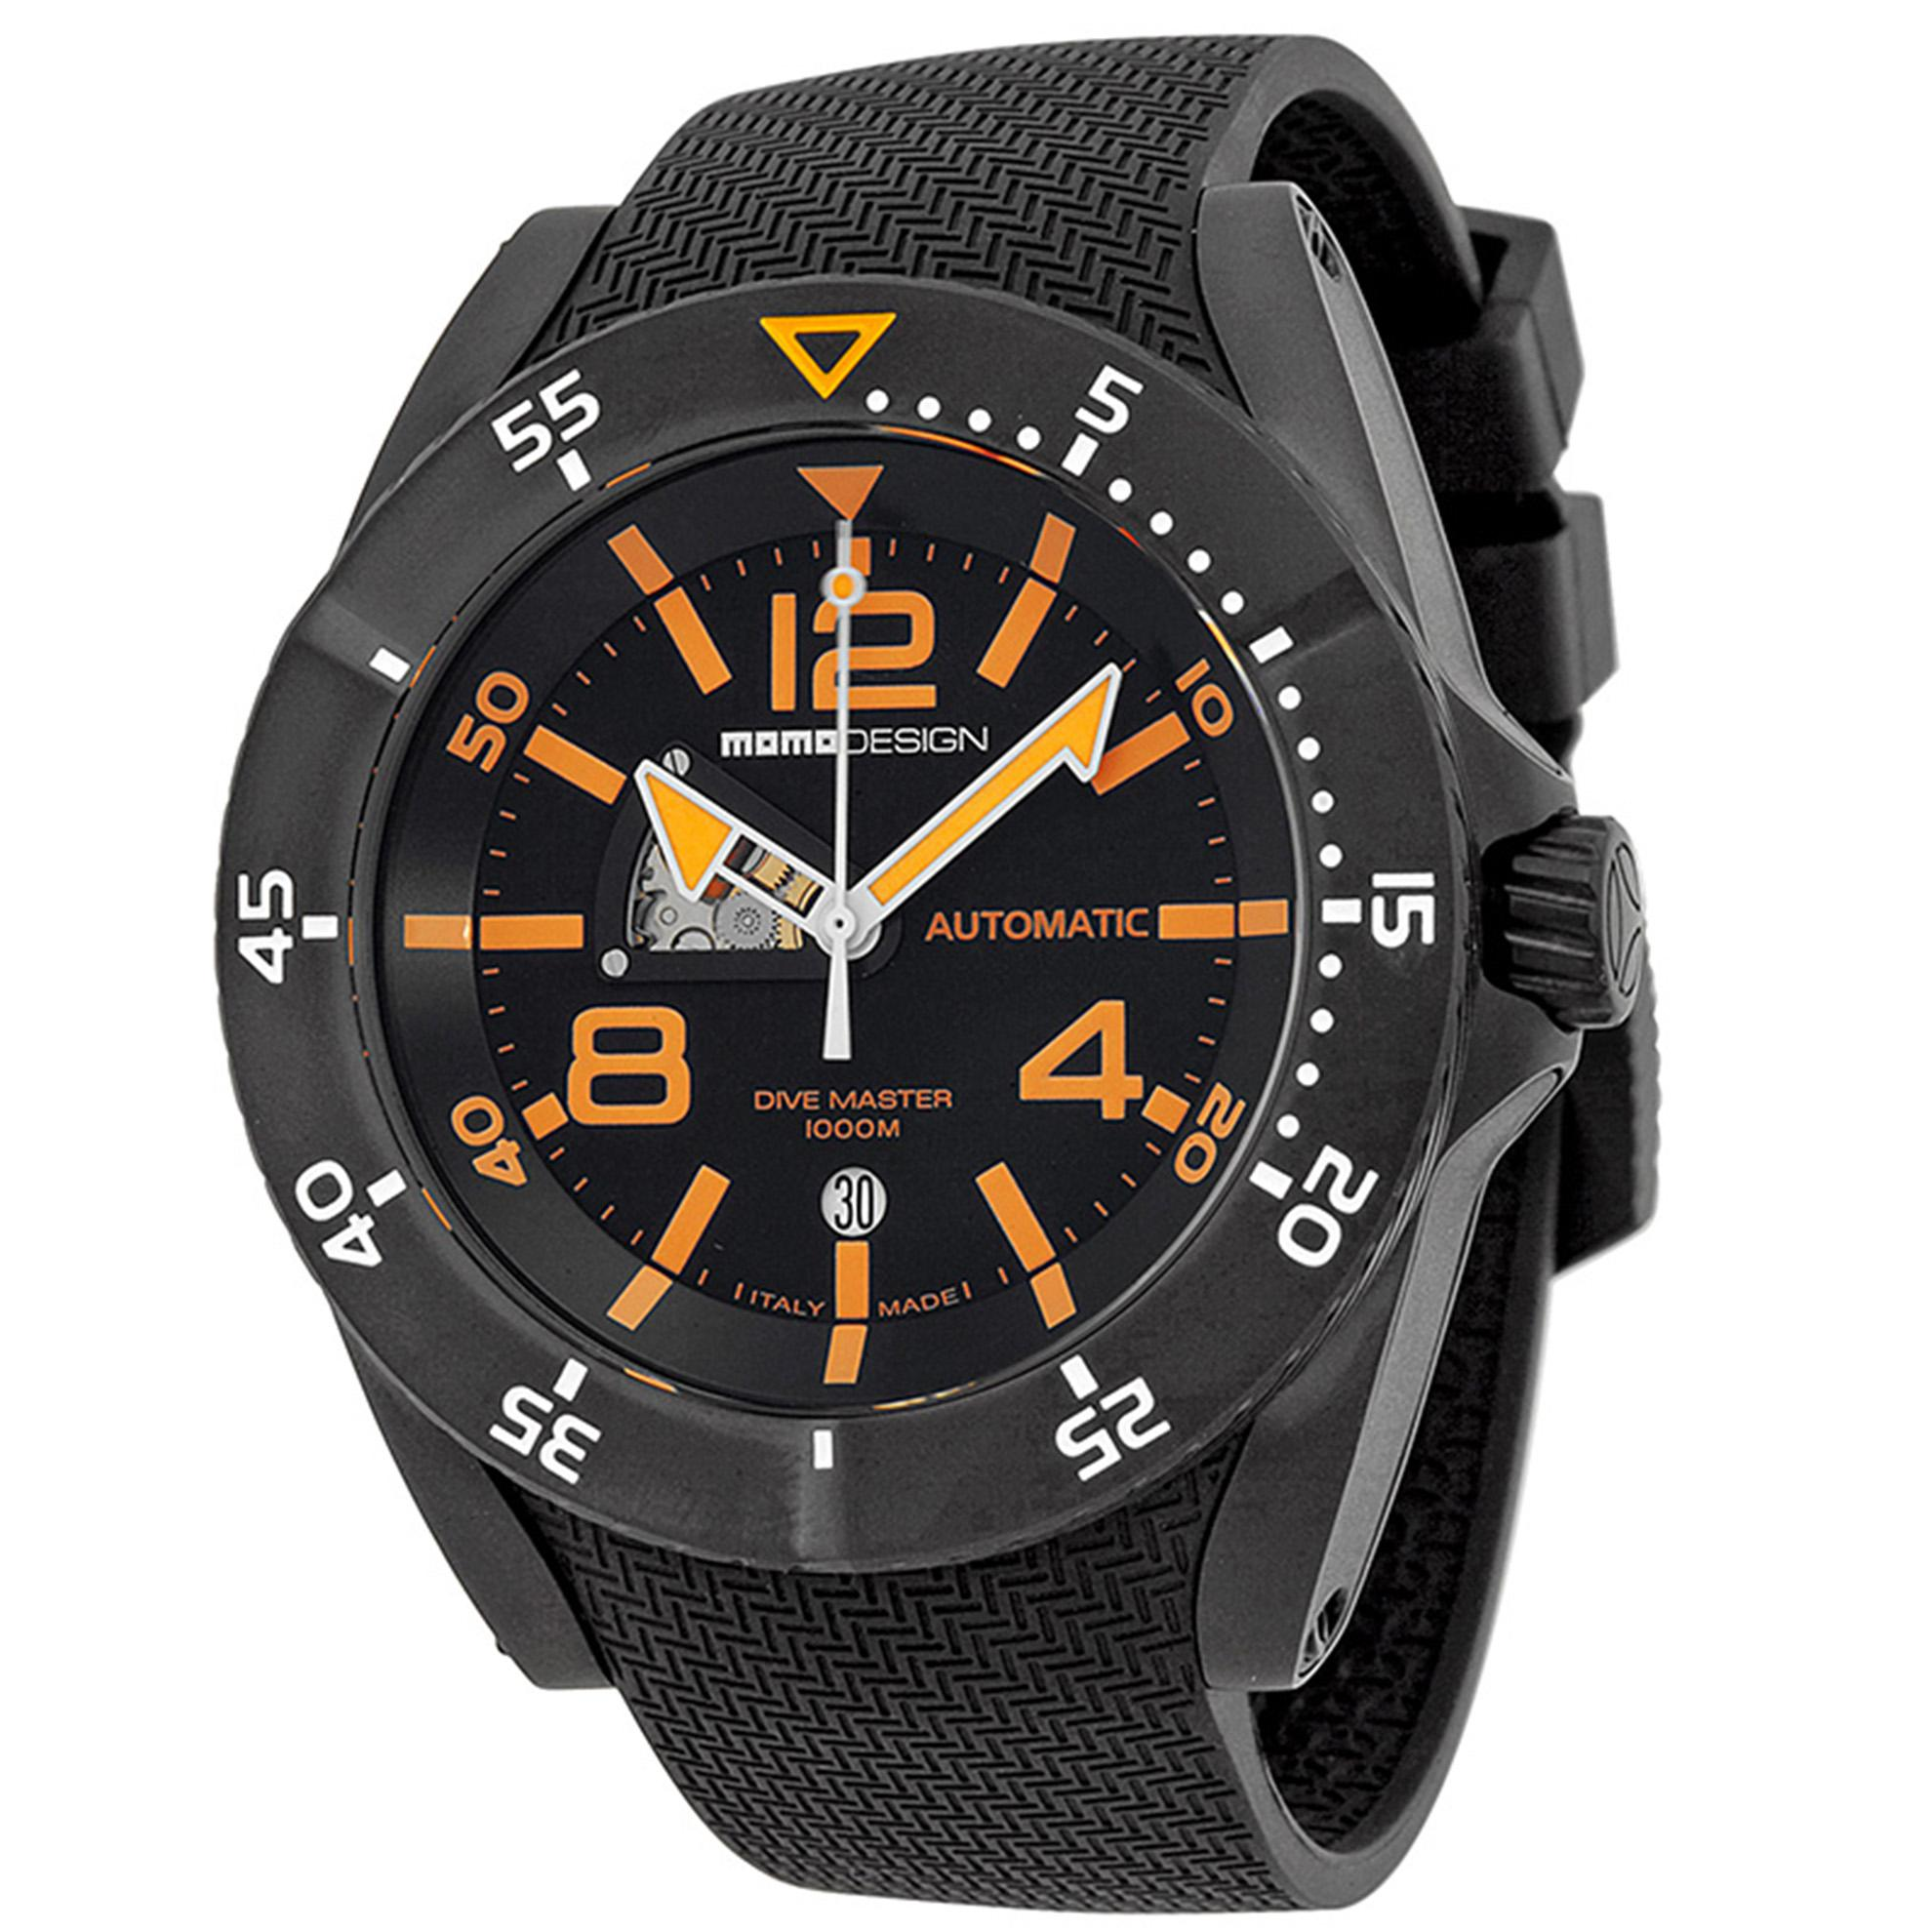 MOMO Design MD279BK31 Momo Design Dive Master Swiss Automatic Black  Dial Orange Markers Rubber Strap